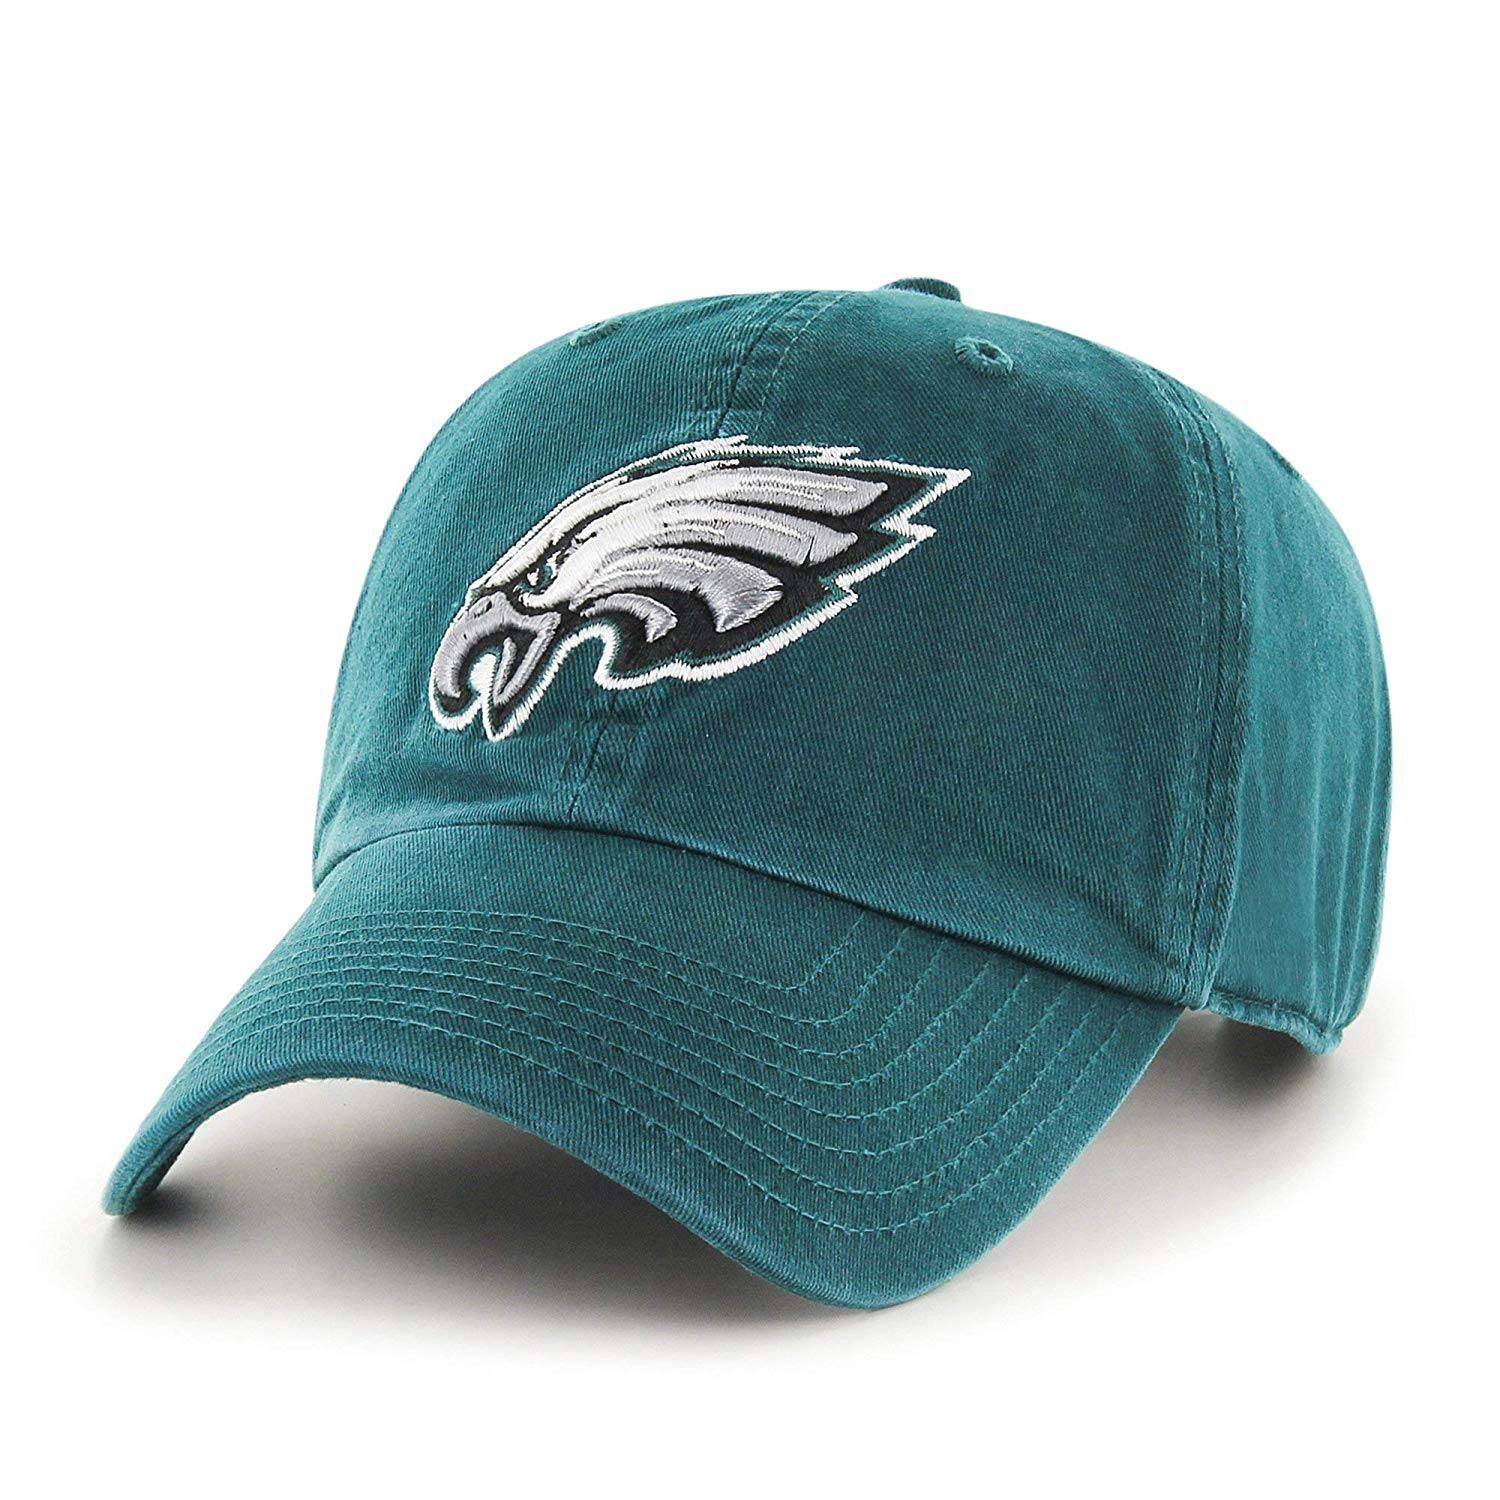 Blue NFL Philadelphia Eagles Hat Sports Football Baseball Cap Embroidered Team Logo Athletic Games Clean Up Adjustable Cap/ Hat Boys Kids Unisex Fan